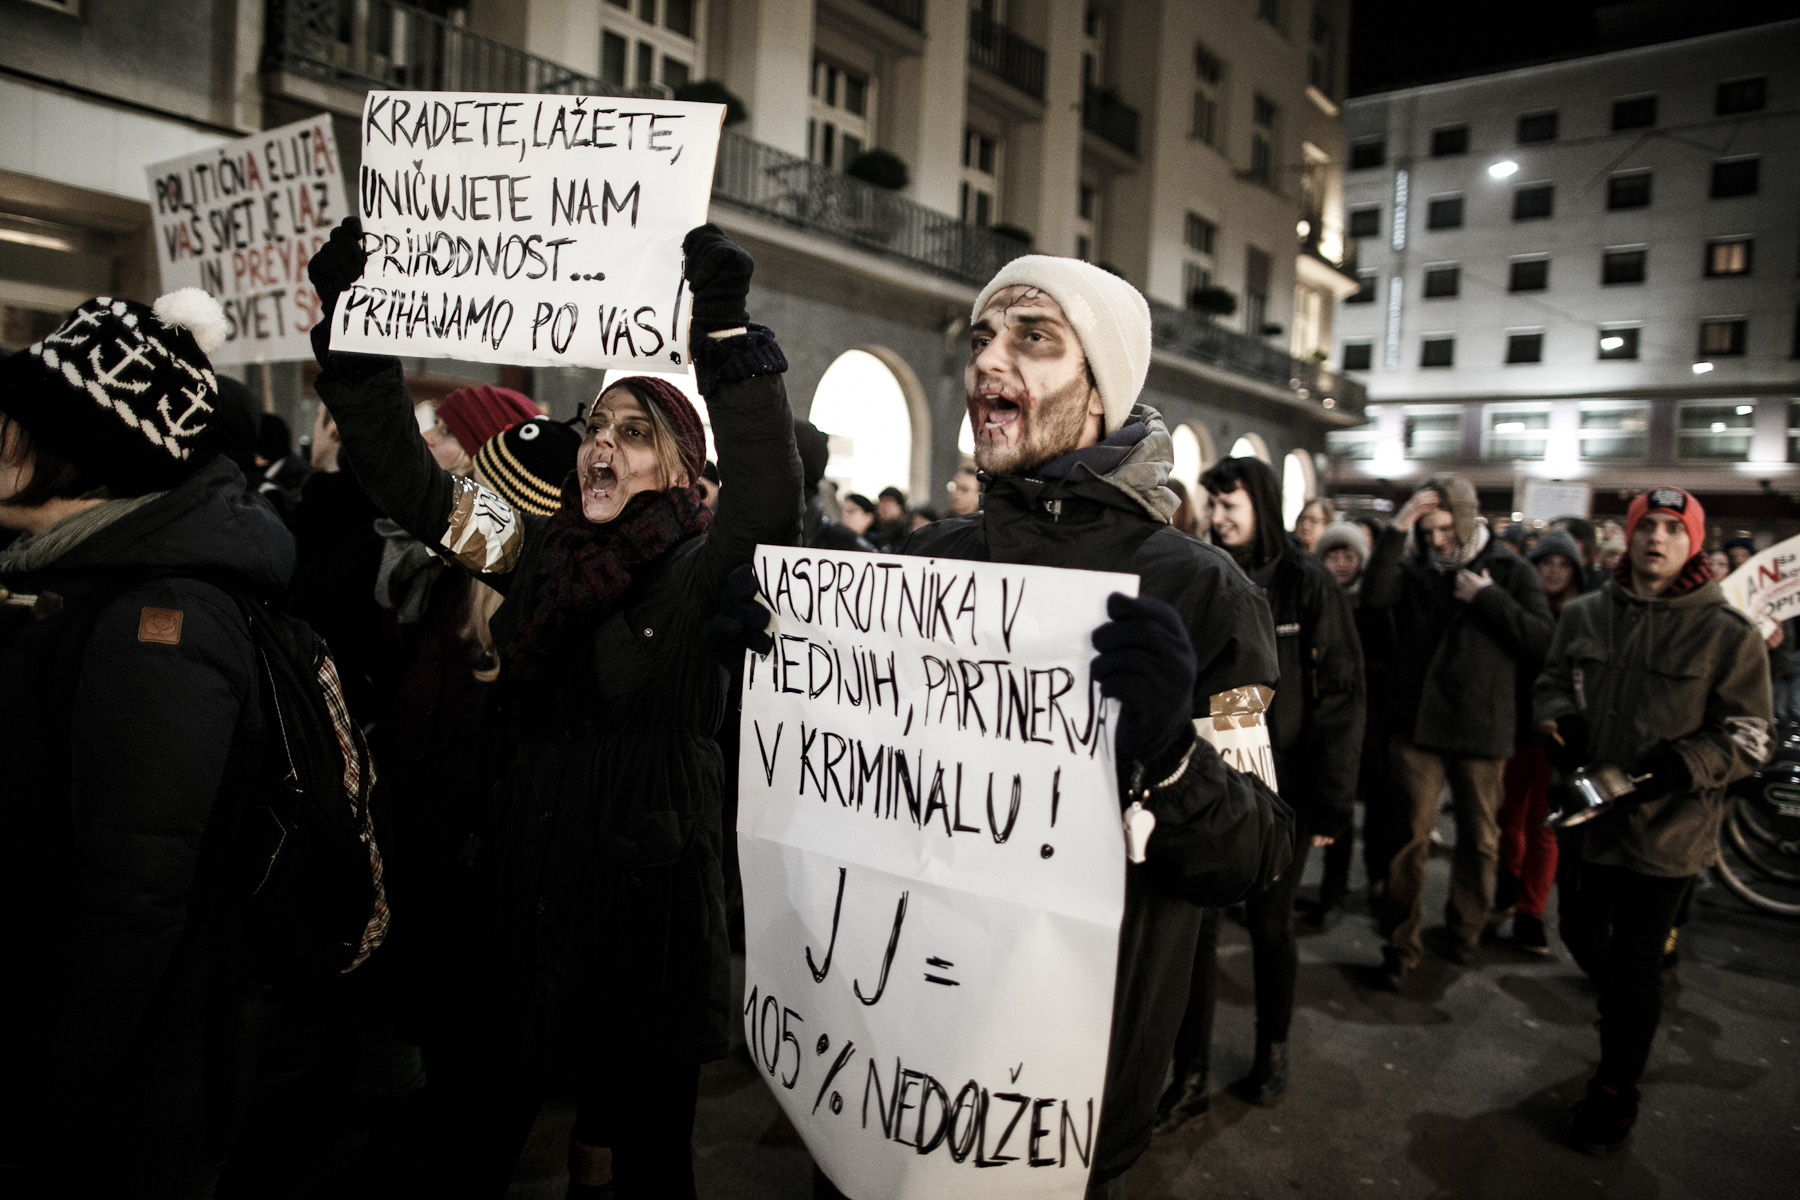 Protesters wearing zombie makeup march through the streets carrying signs that read {quote}You're stealing, you're lying, you're destroying pour future… We're coming for you!{quote} during a countrywide uprising in Ljubljana, Slovenia, on January 11, 2013.